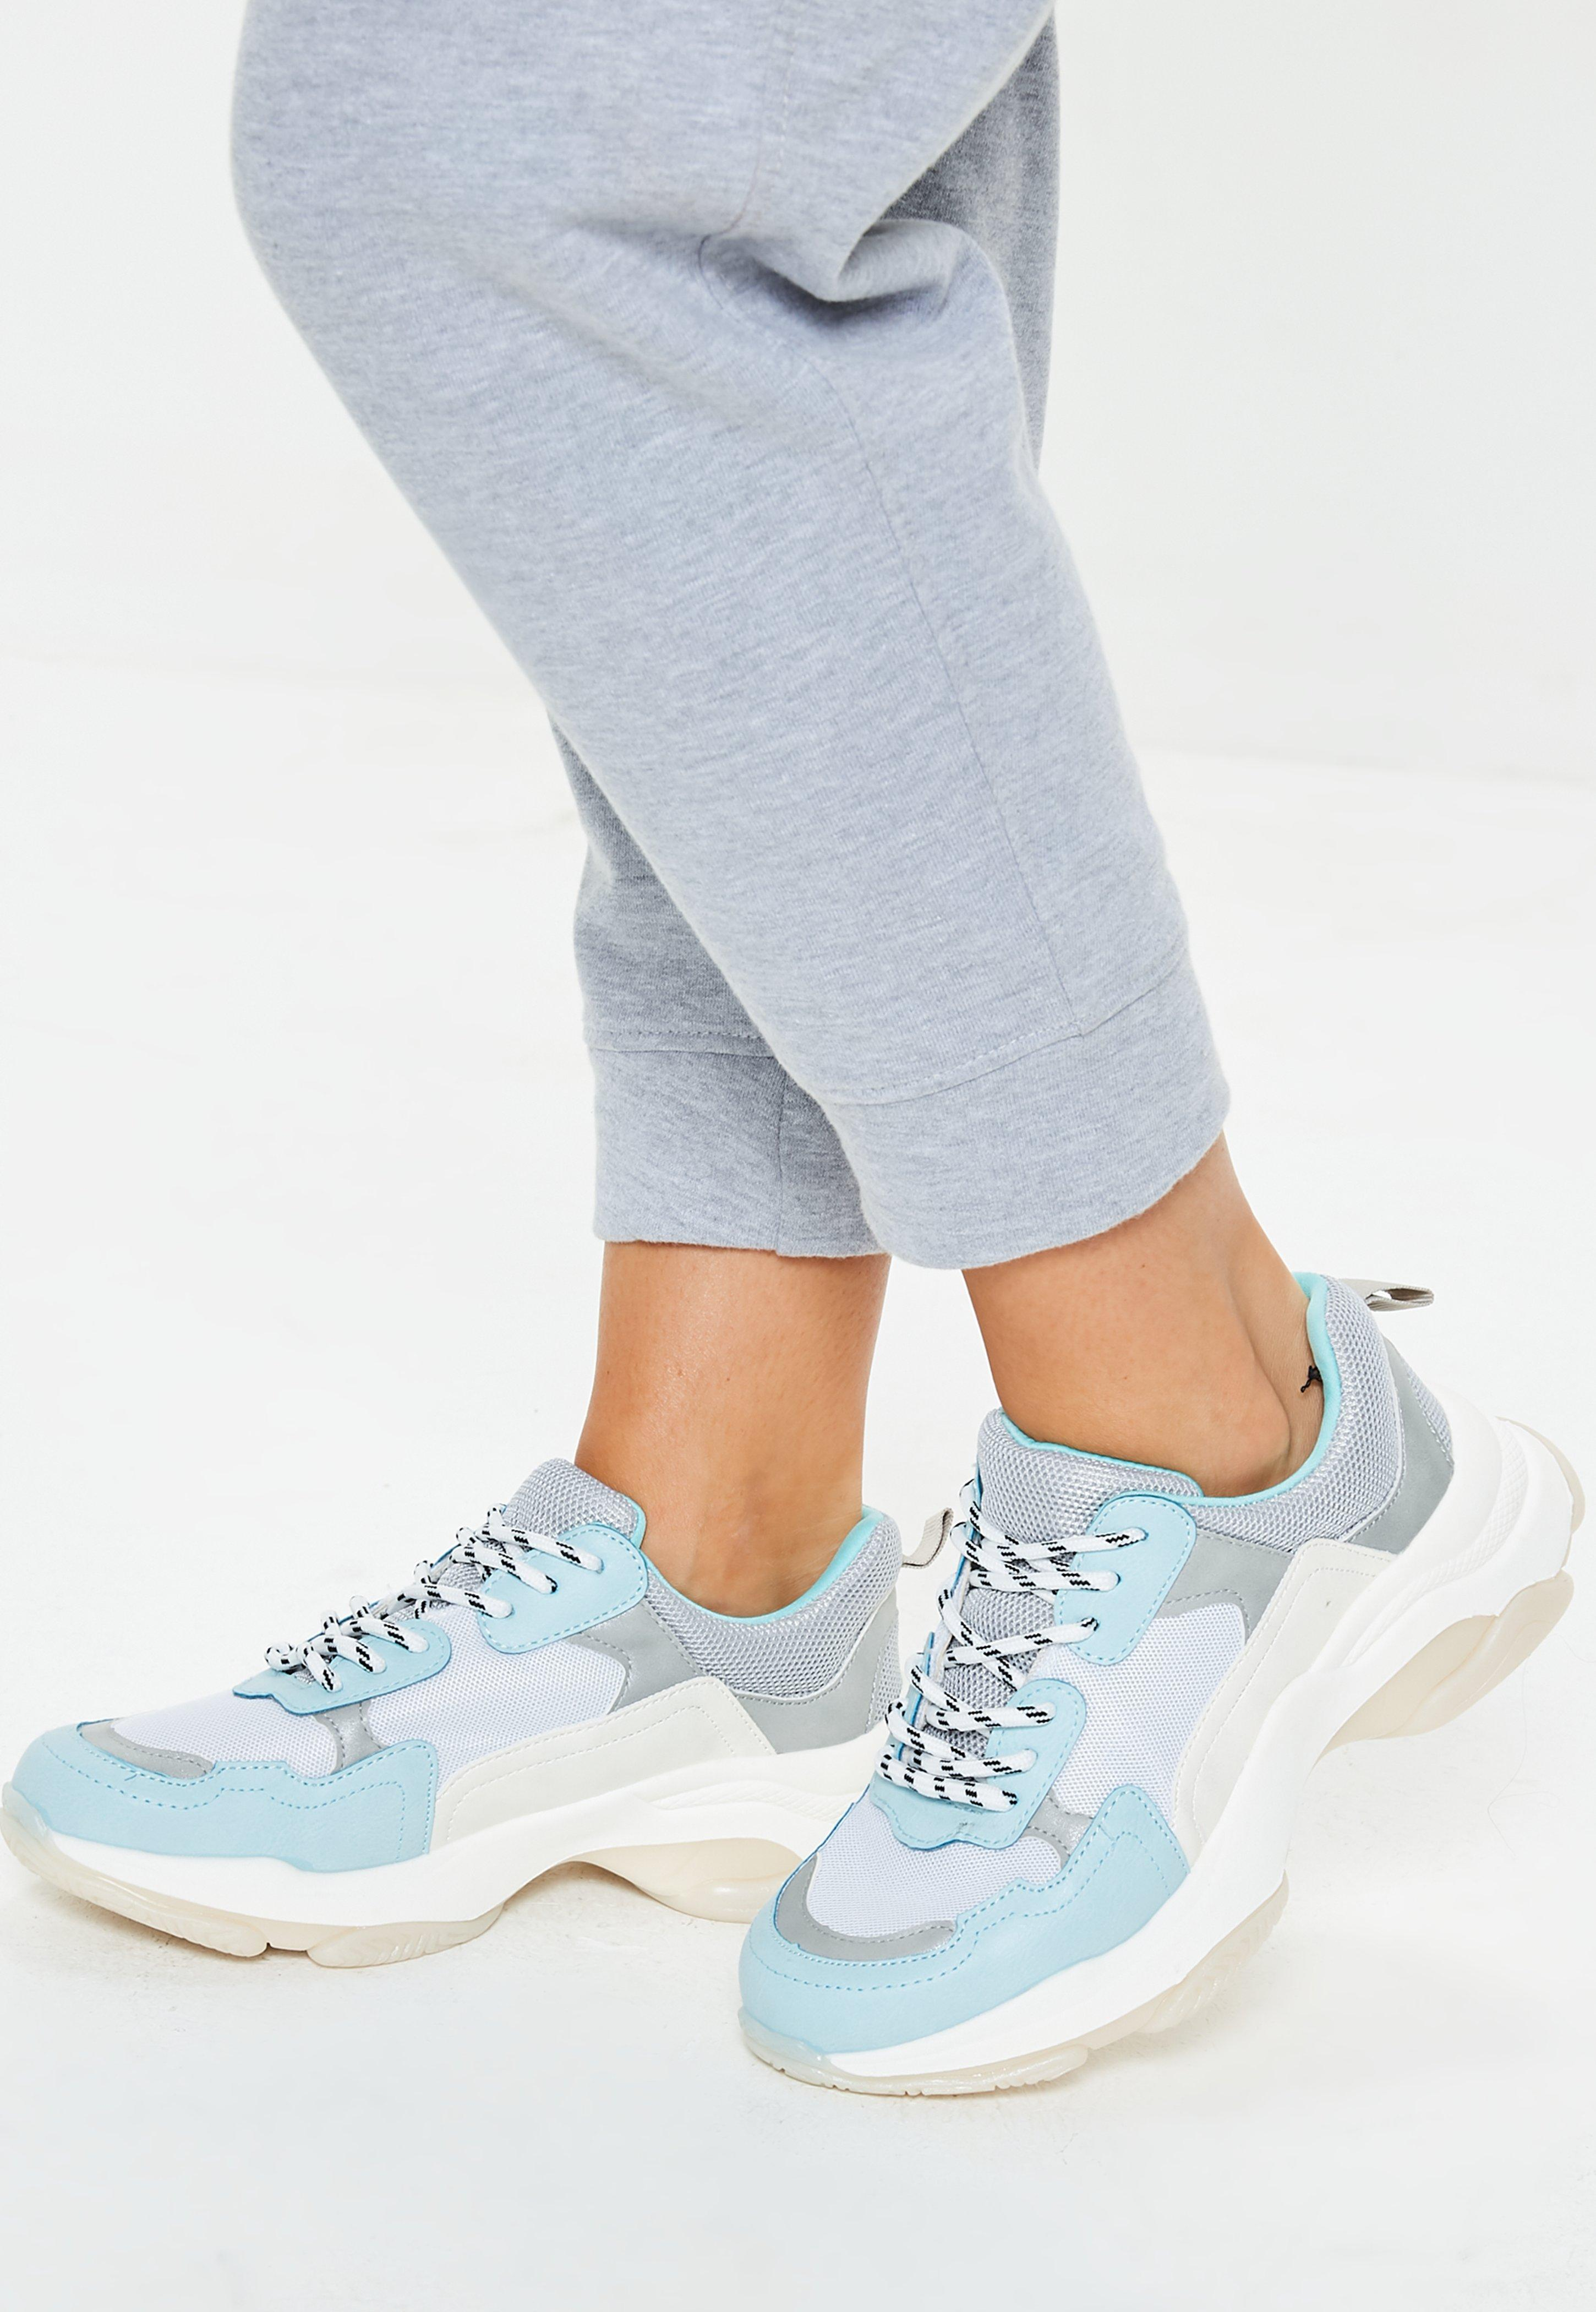 Sneakers Shop Womens Online Missguided Blue